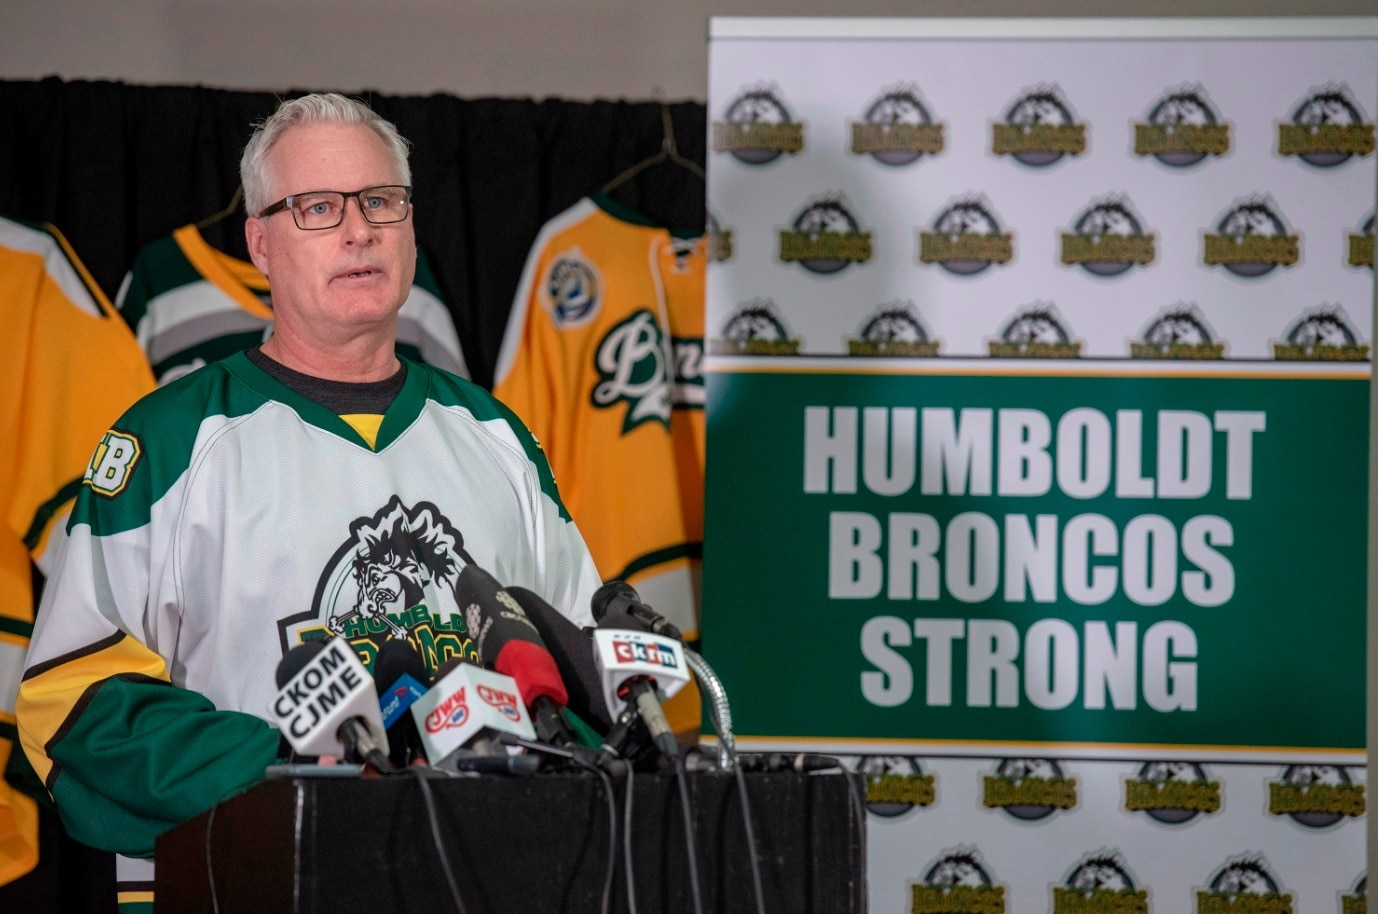 Rob Muench, Mayor of Humboldt, speaks during a press conference at the Elgar Petersen Arena in Humboldt, Saskatchewan, on Saturday, April 7, 2018.